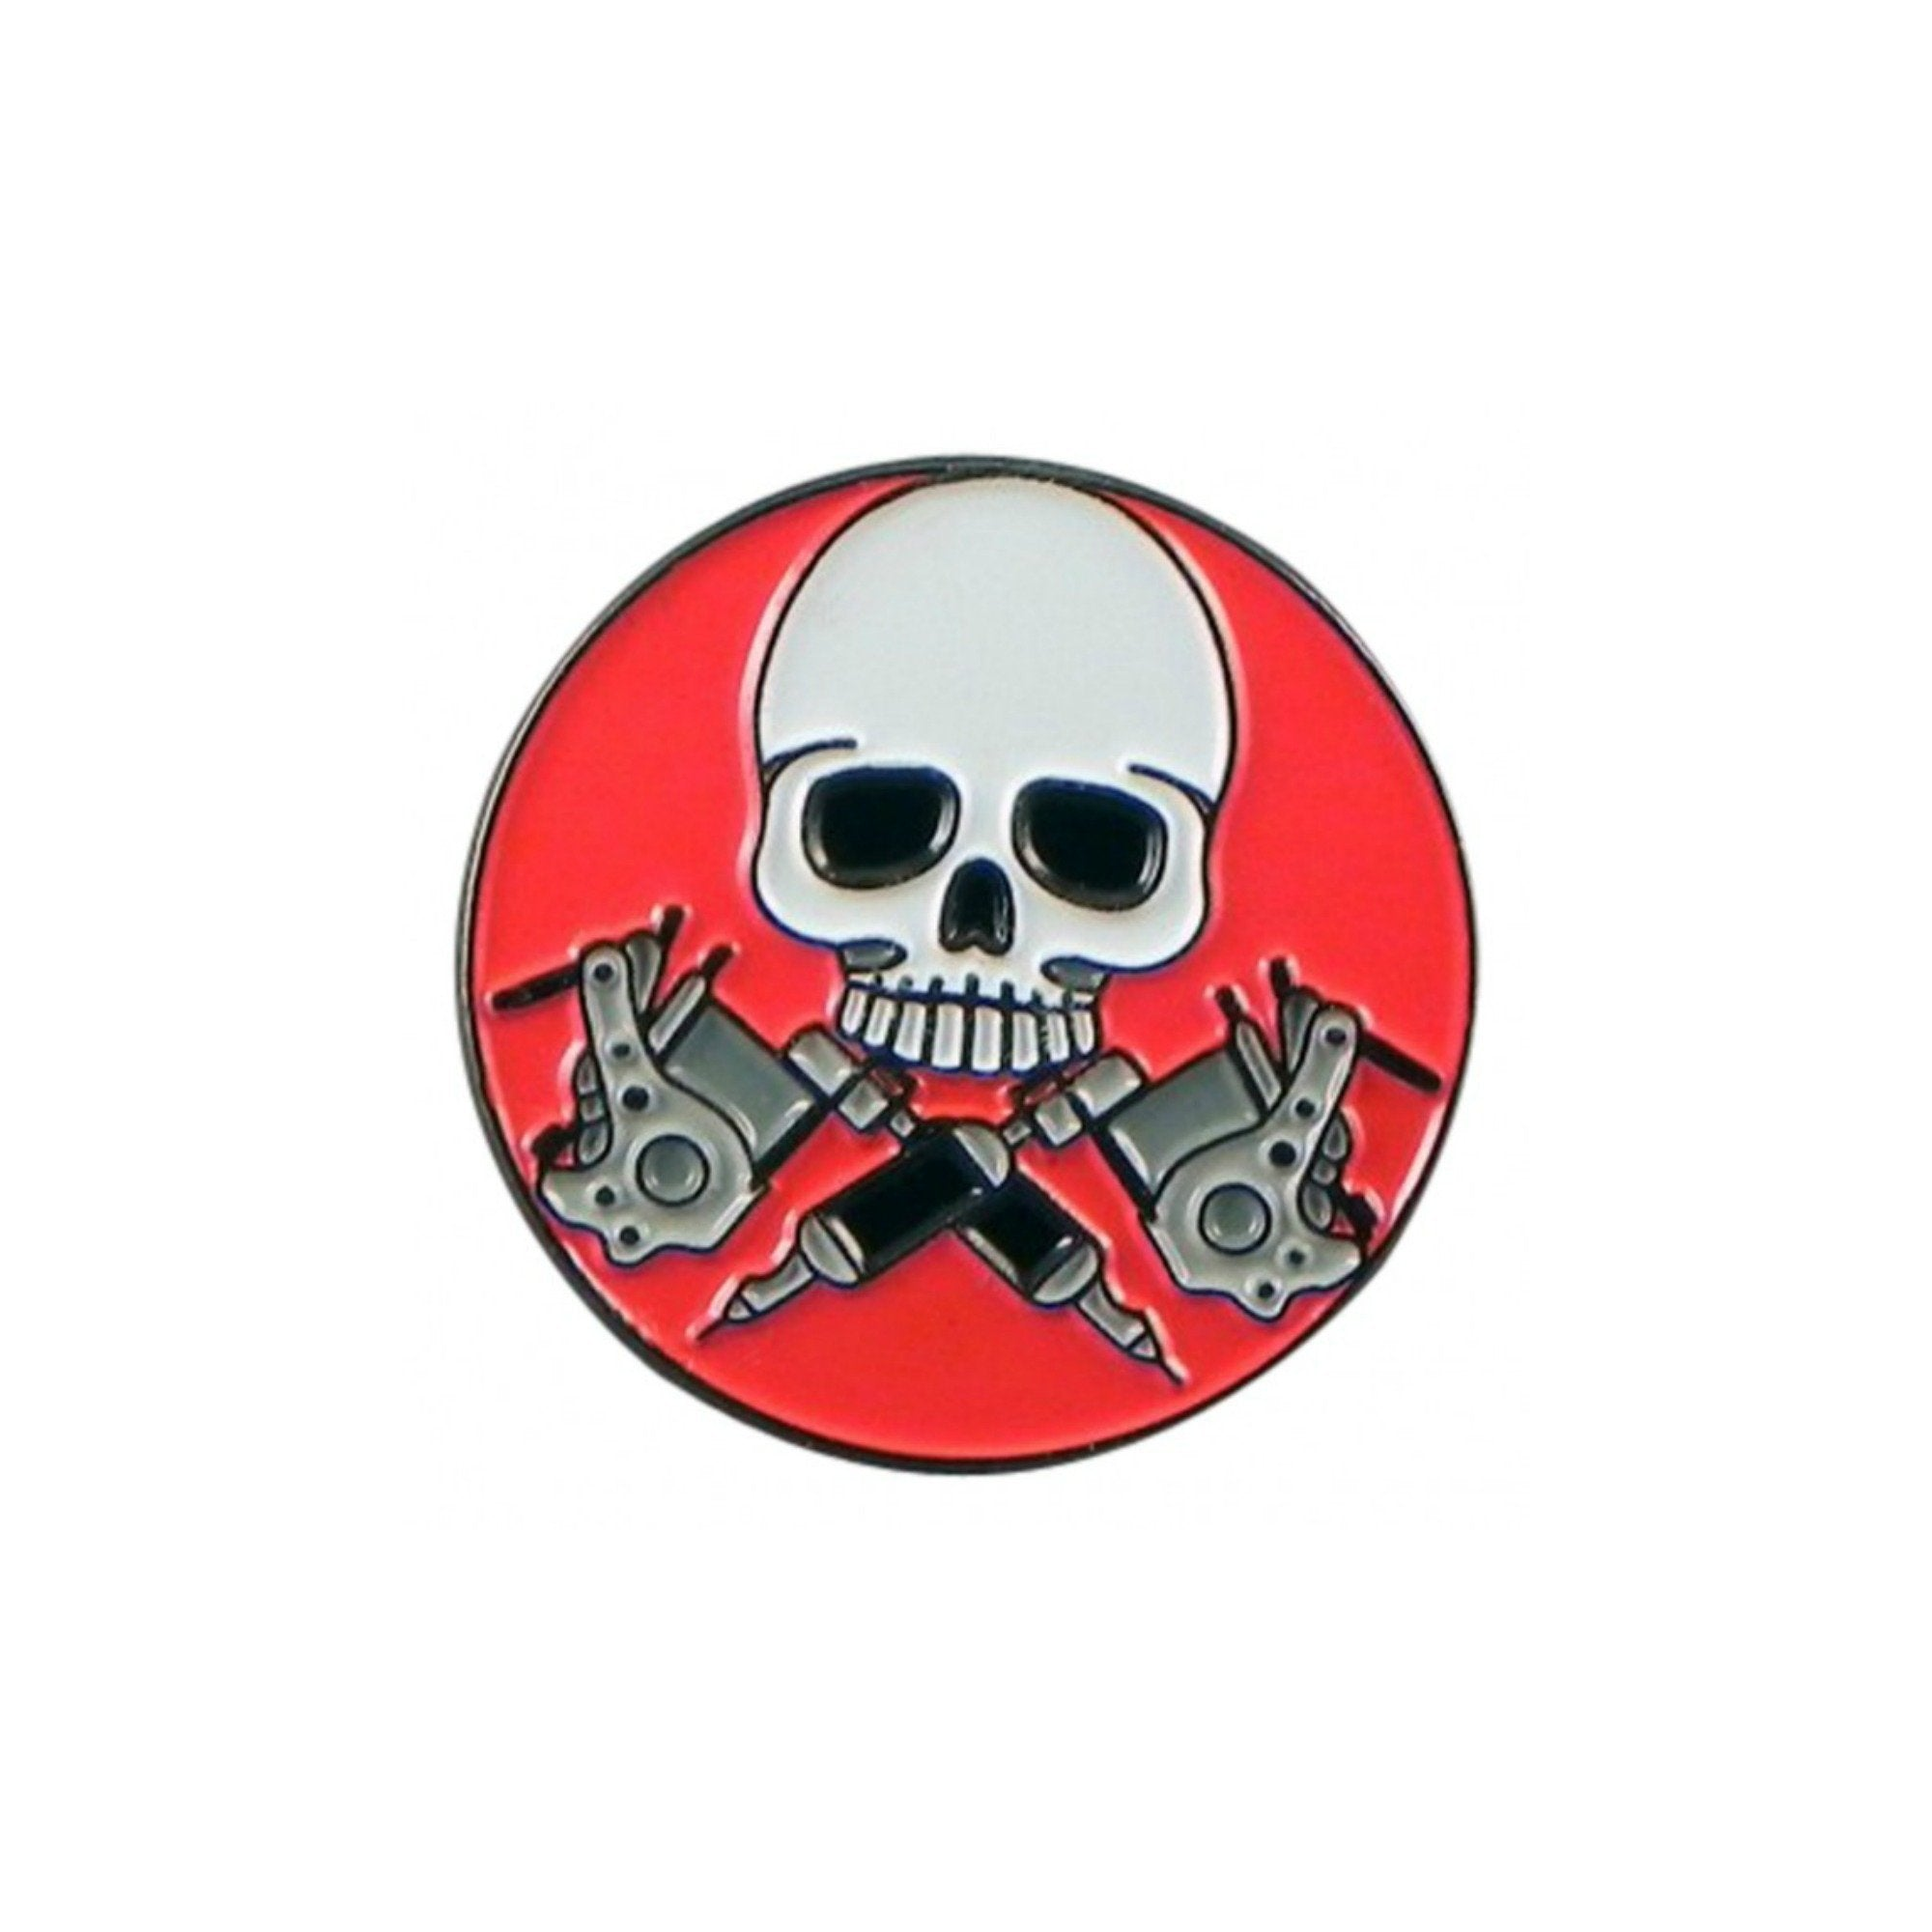 Tattooist Skull Lapel Pin Badge - Minimum Mouse